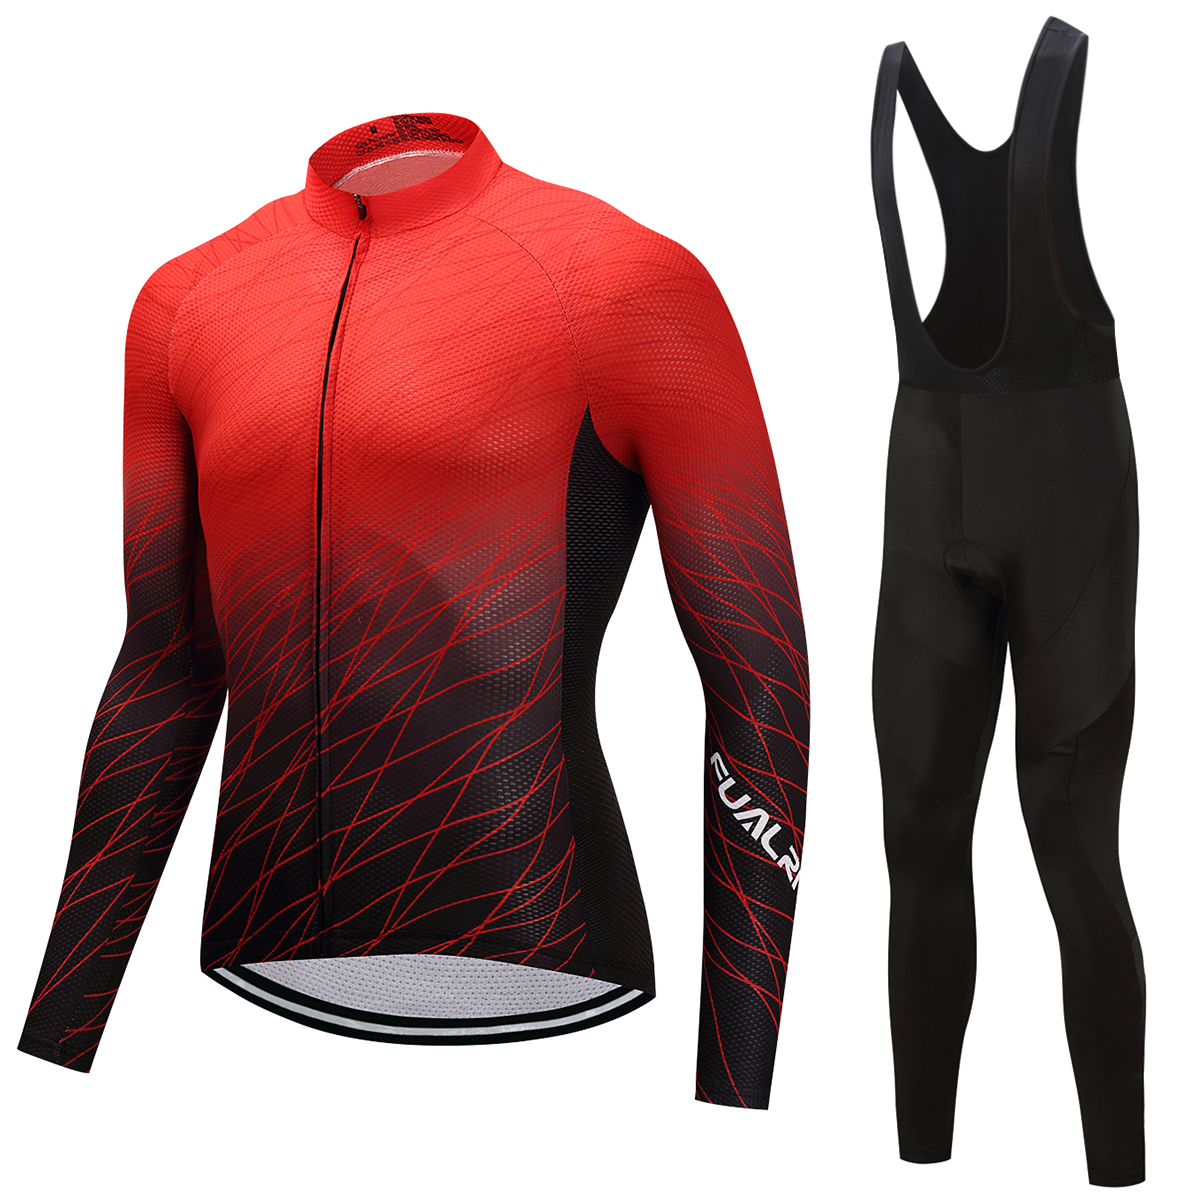 FUALRNY Winter thermal fleece cycling jersey 2018 pro team ropa ciclismo  hombre invierno men cycling clothing mtb bike clothes 18da1859b